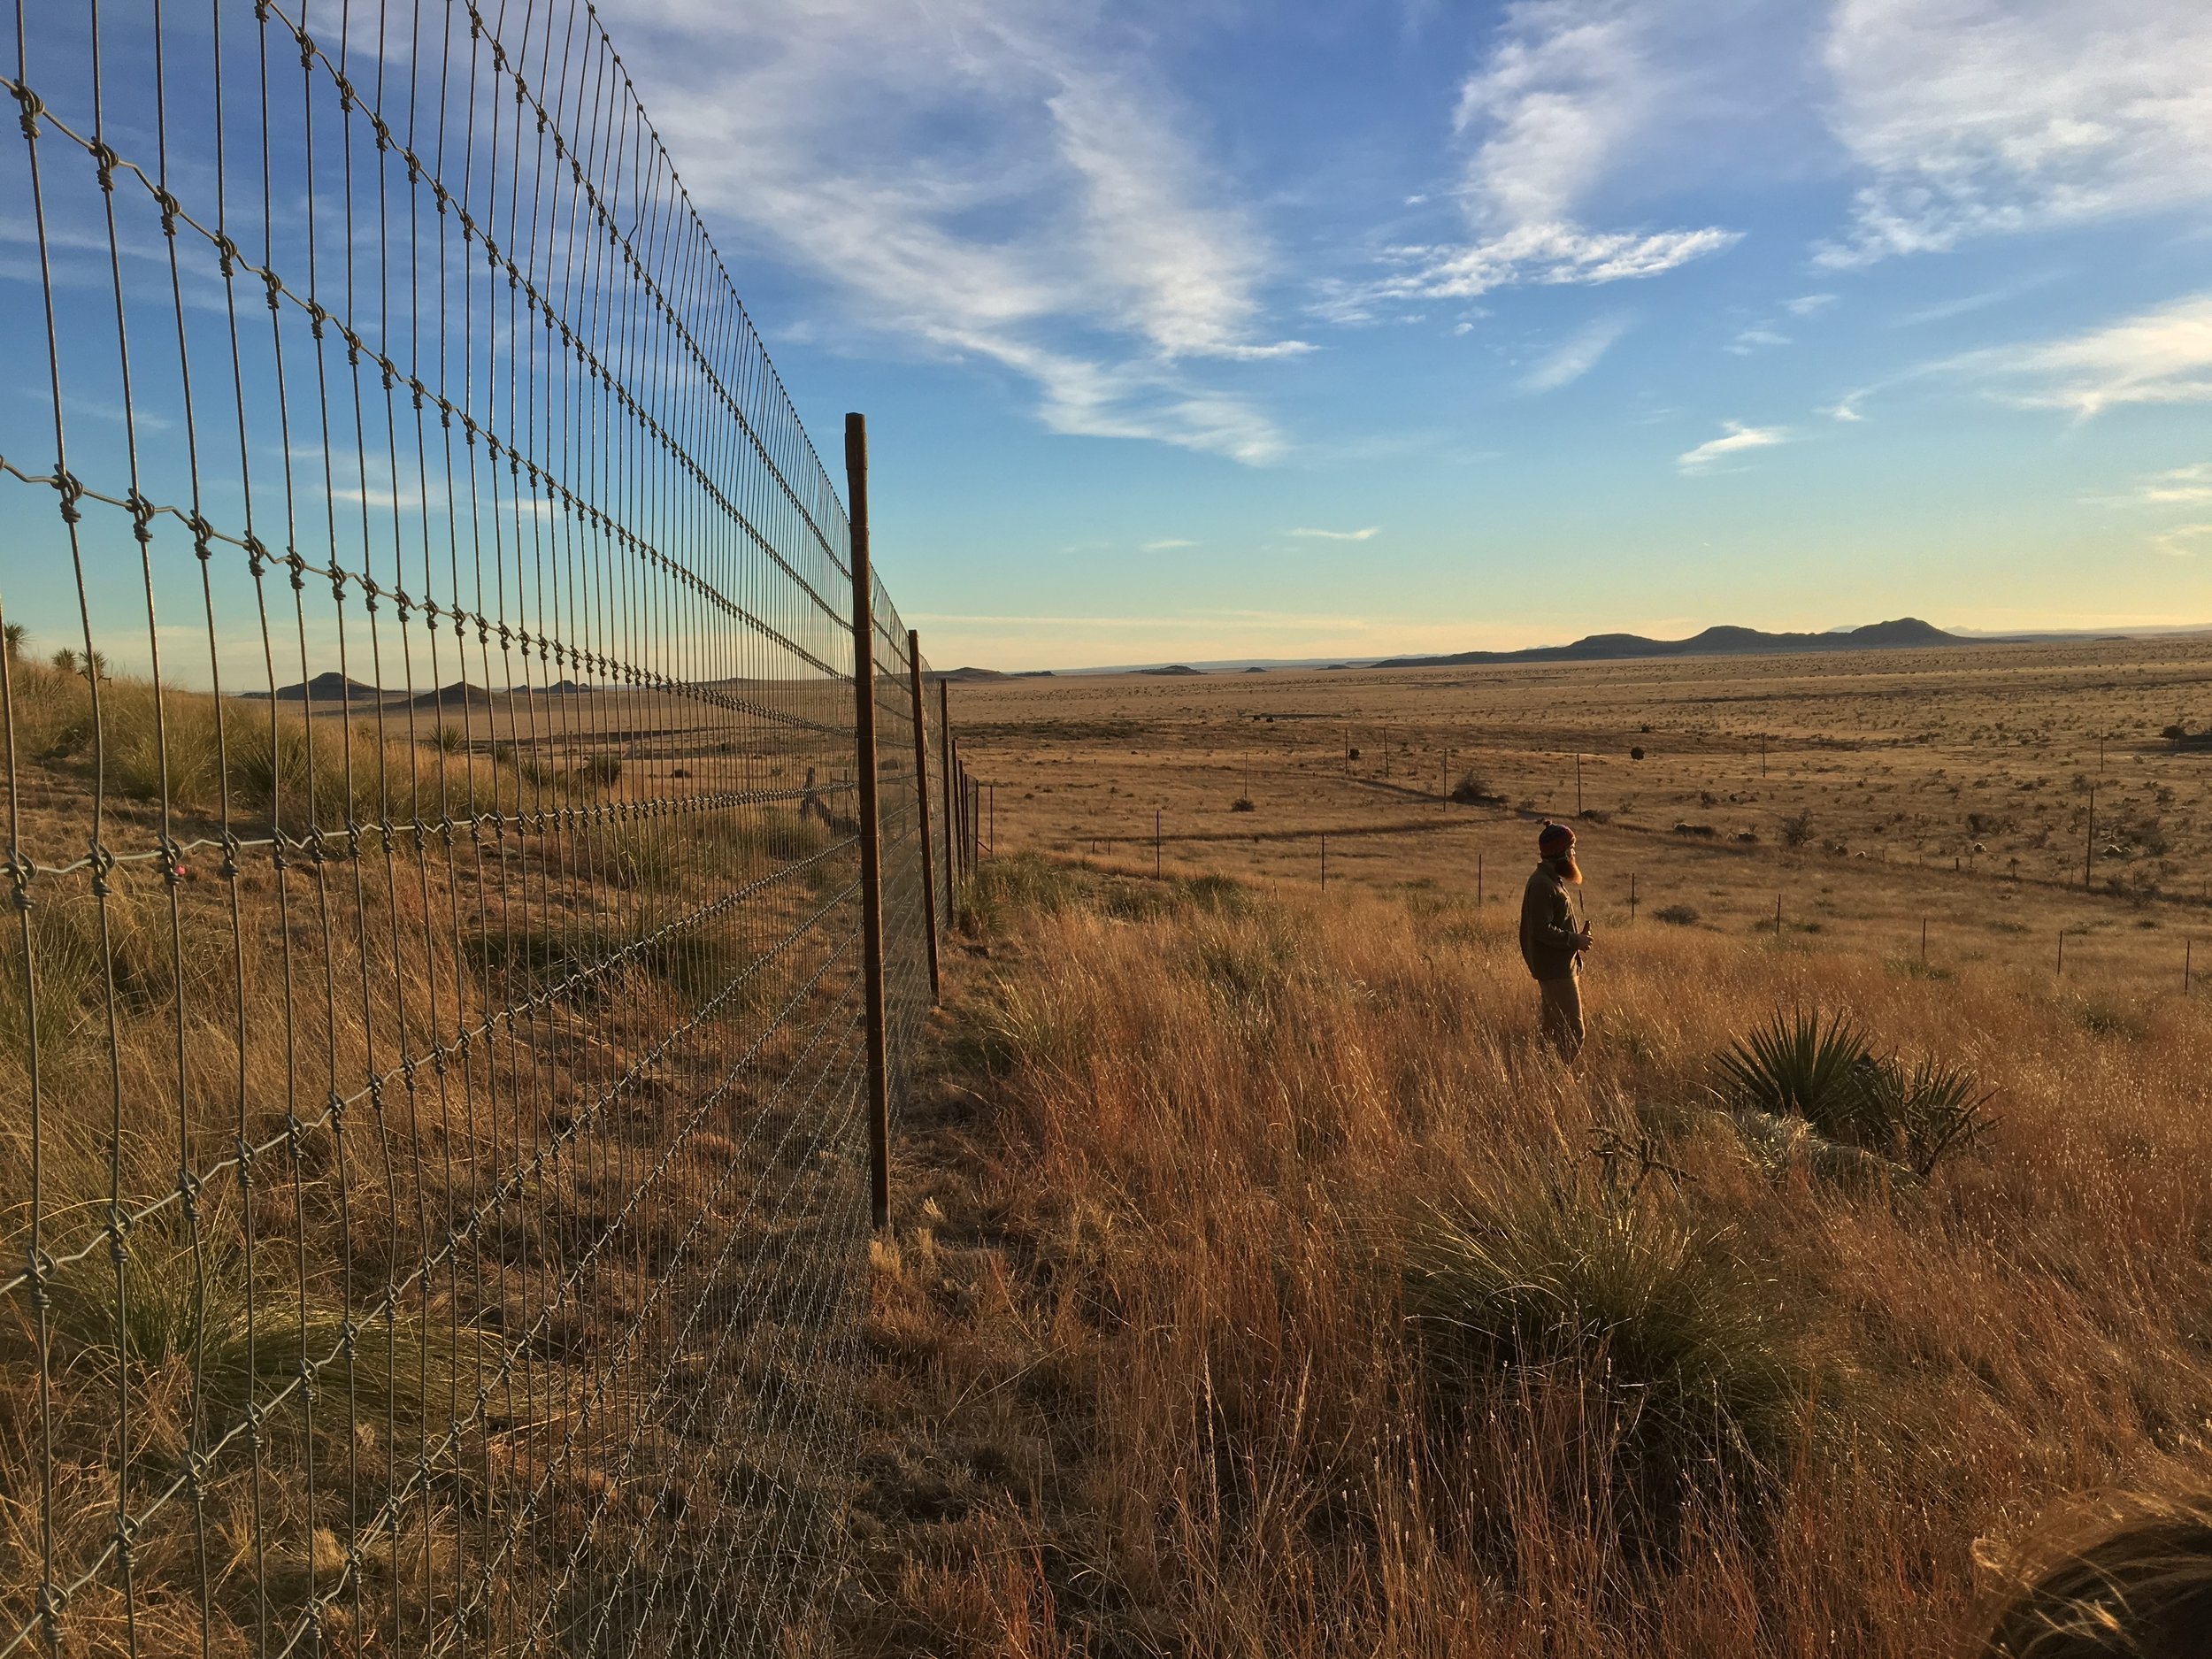 Promit spent Christmas with me working at Alta Marfa. He took some awesome pictures while we were there.